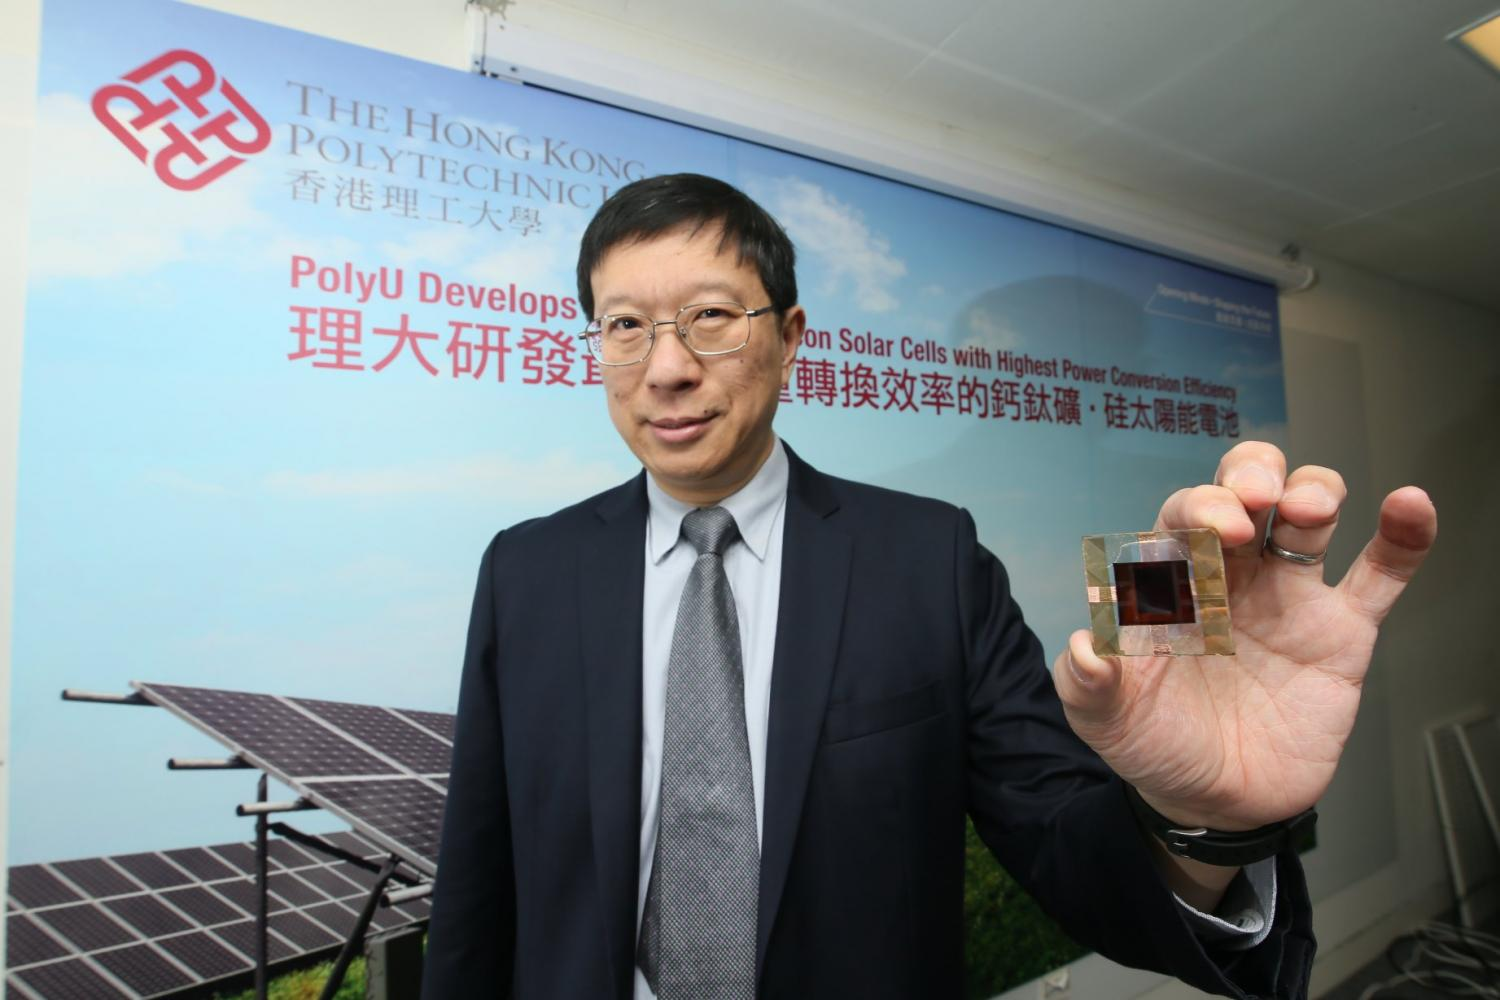 Engineers Develop Solar Cells With Highest Power